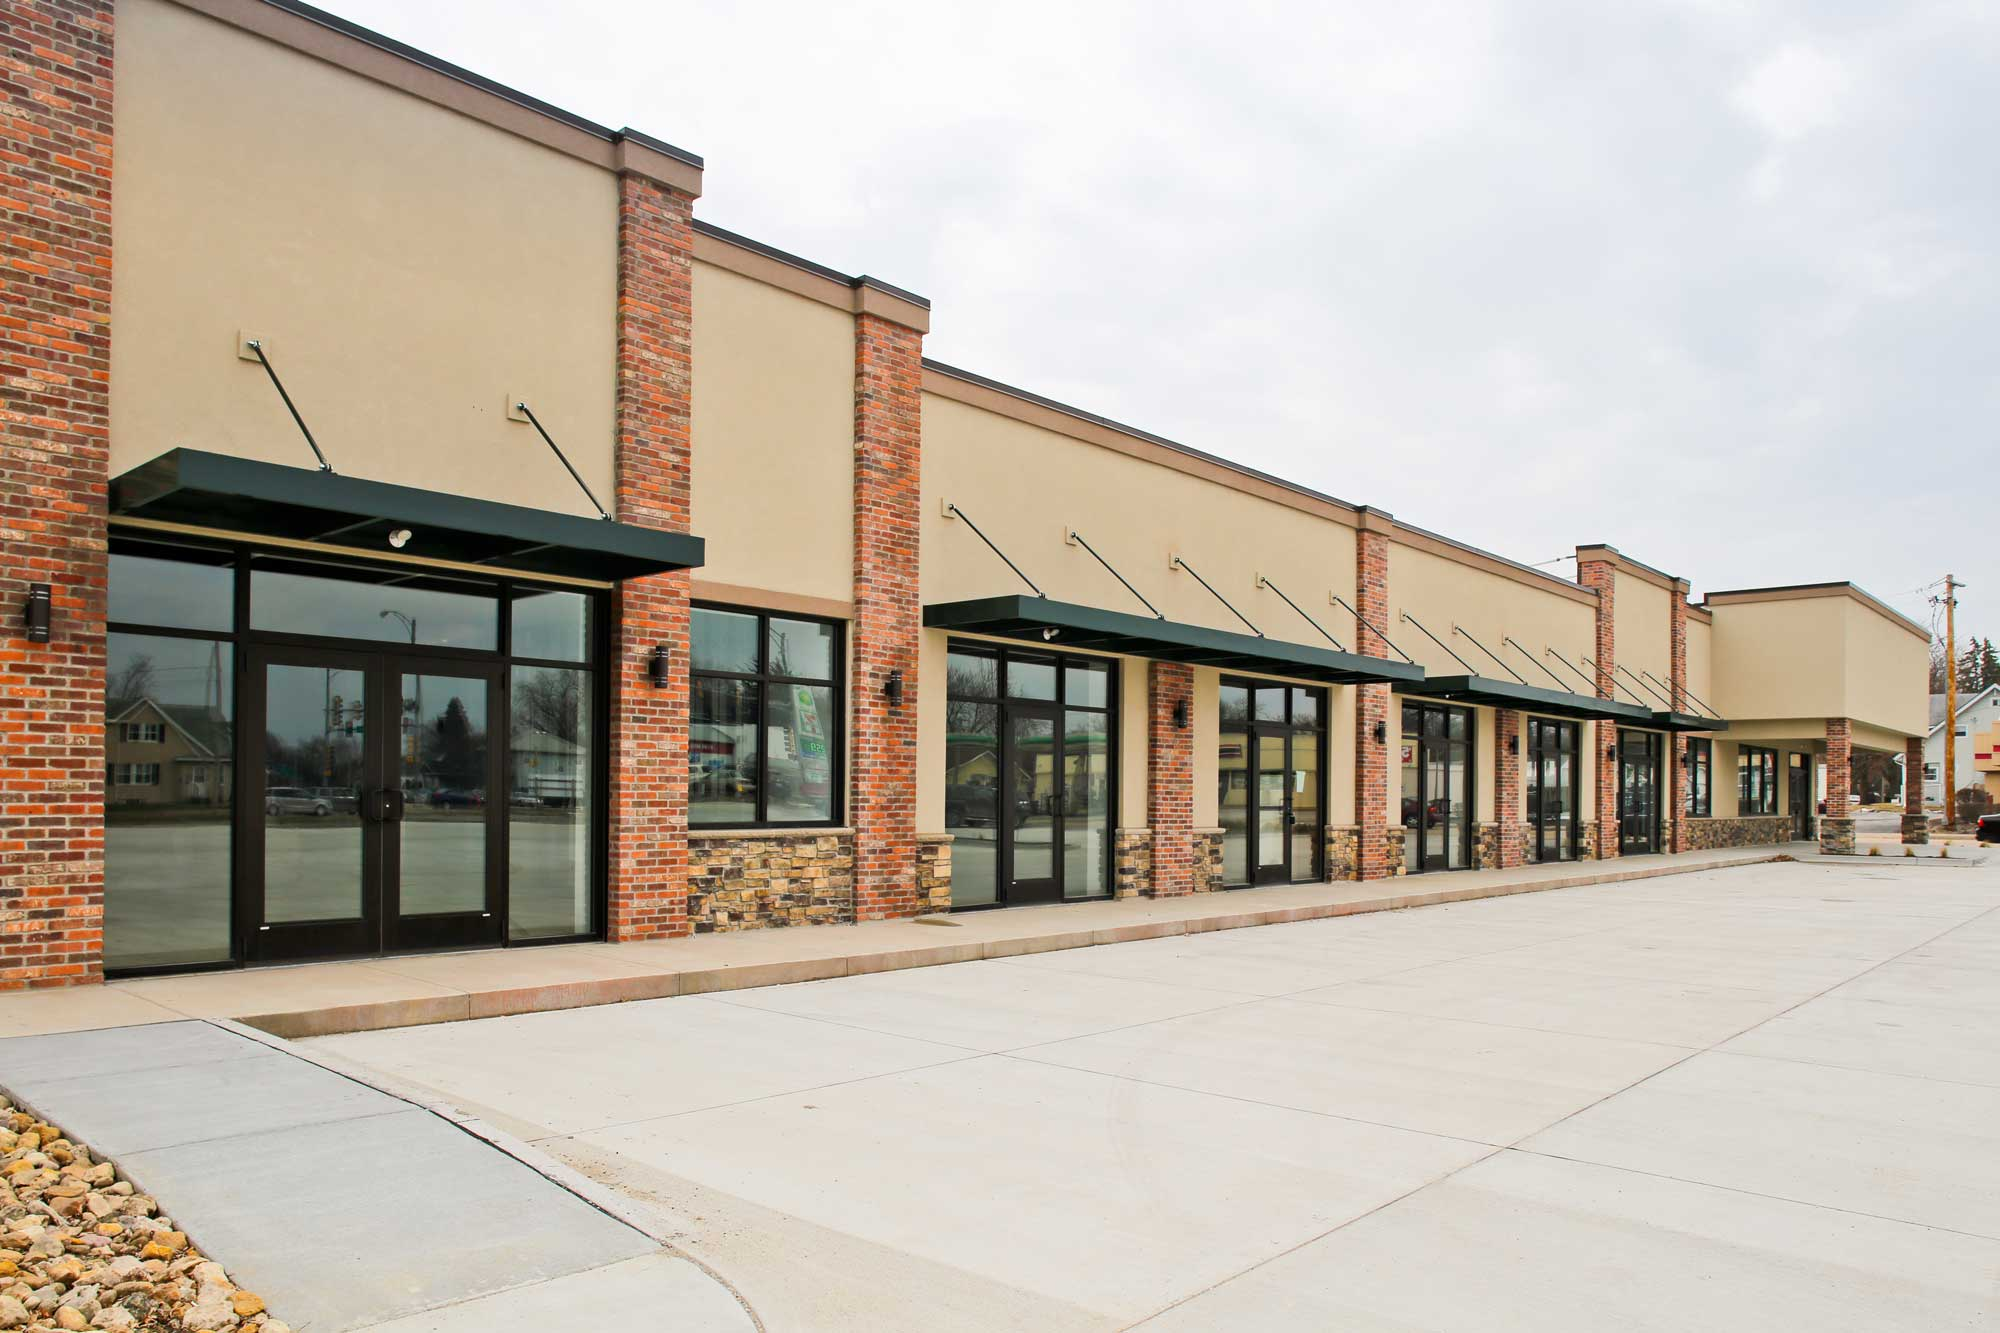 Commercial Plaza built by Daxon Construction